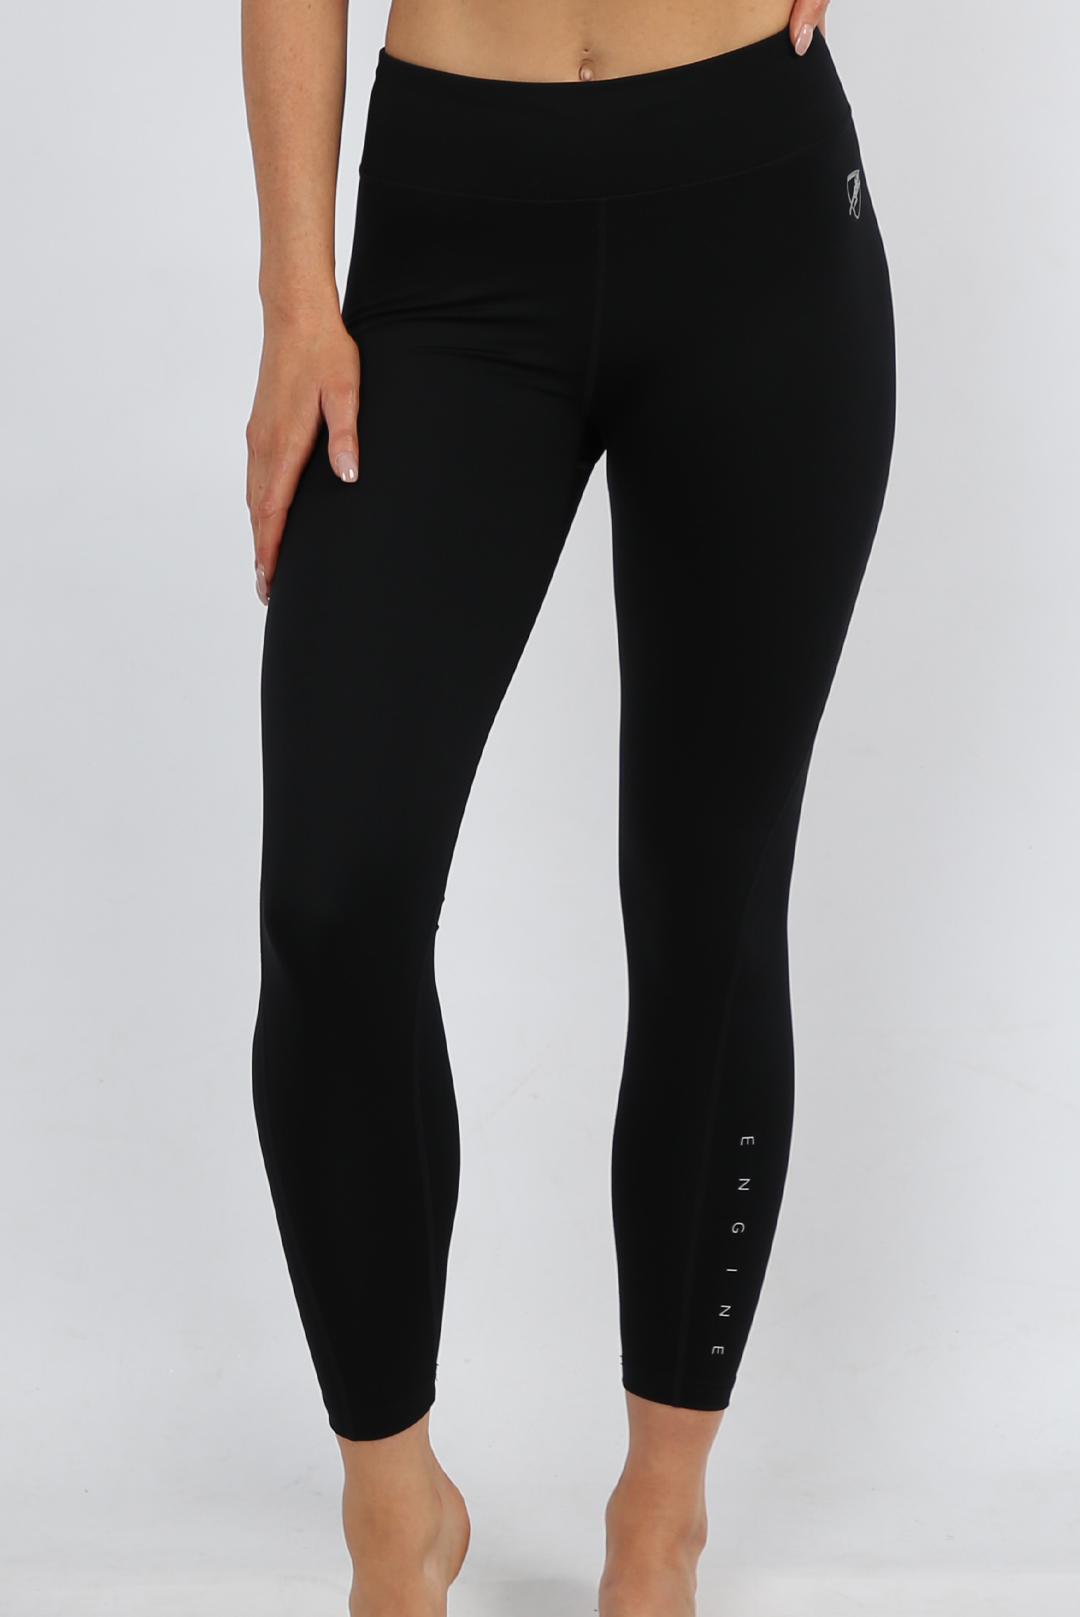 Women's Classic Performance Tights